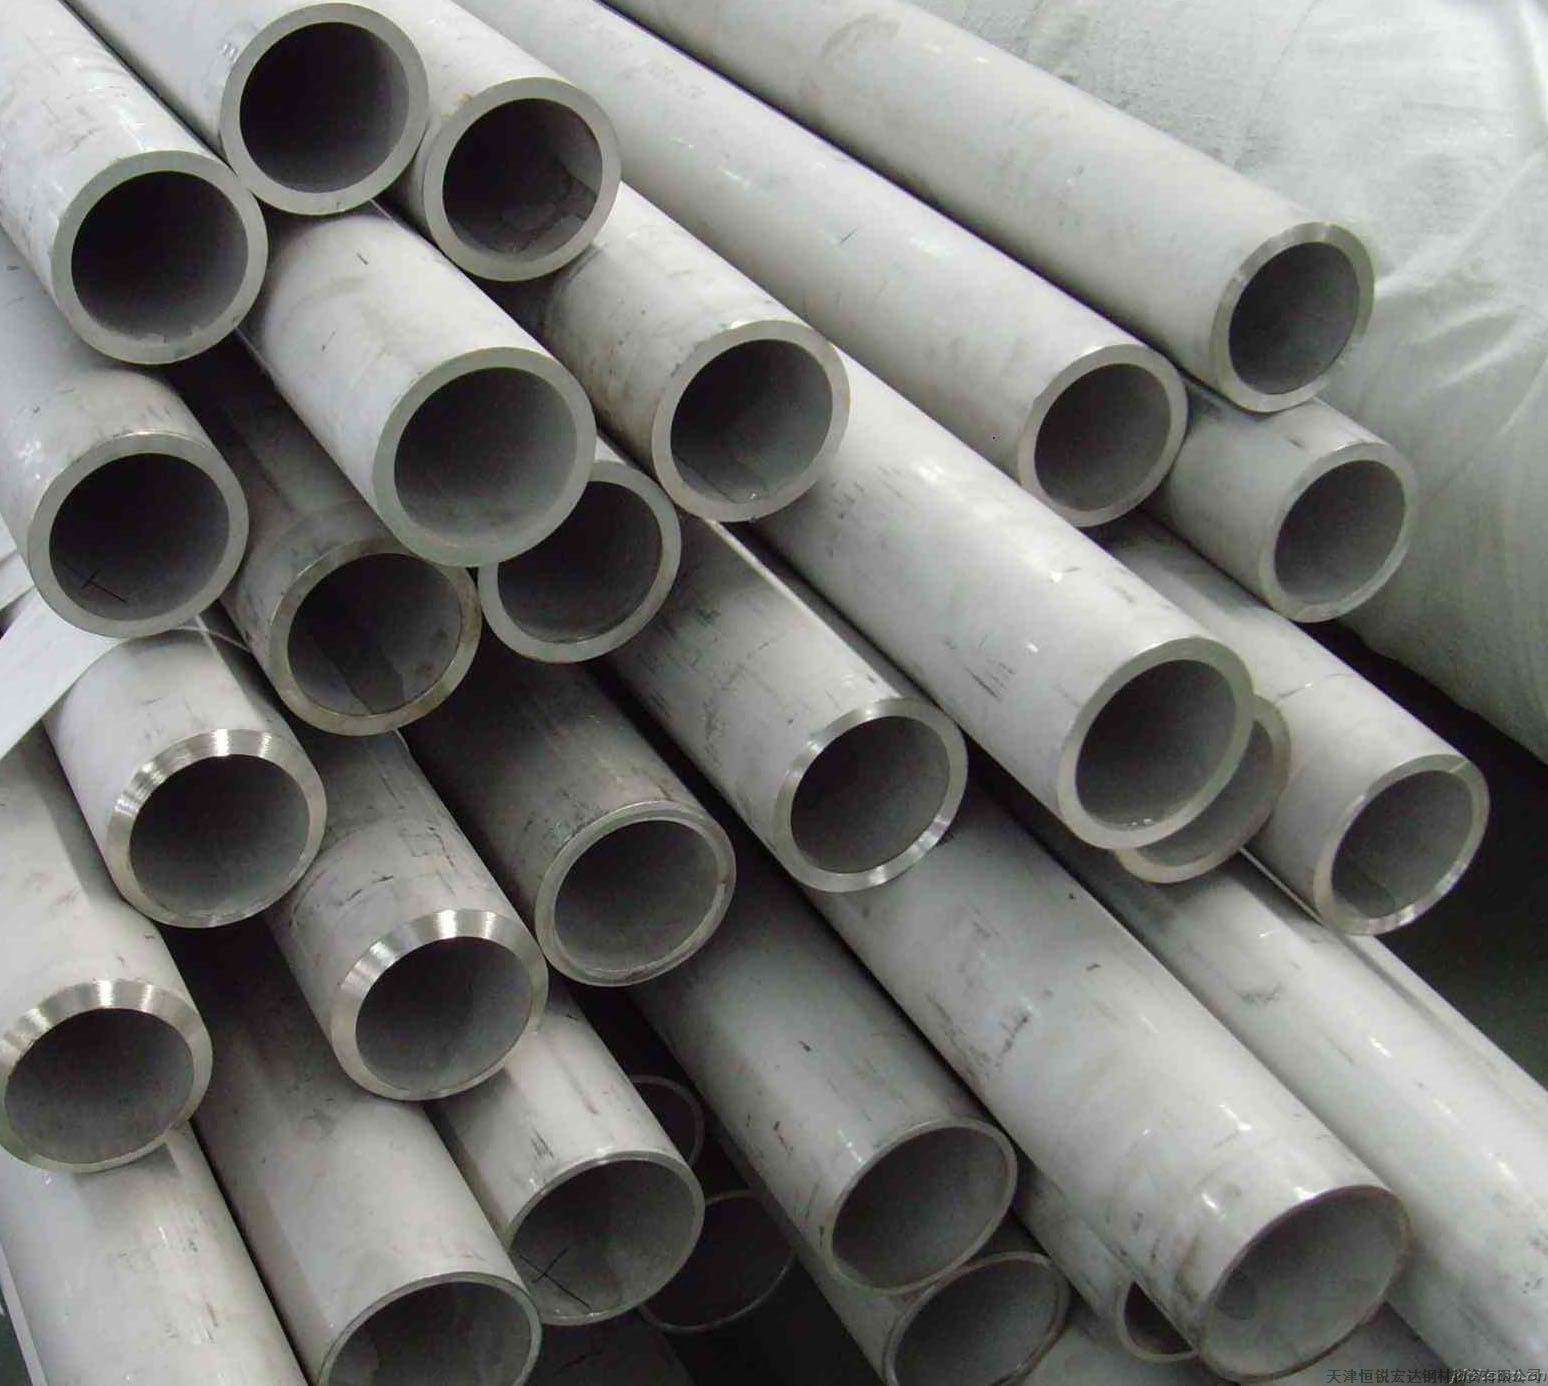 SS304 Syainless Steel Bar/Plate/Tube/Coil